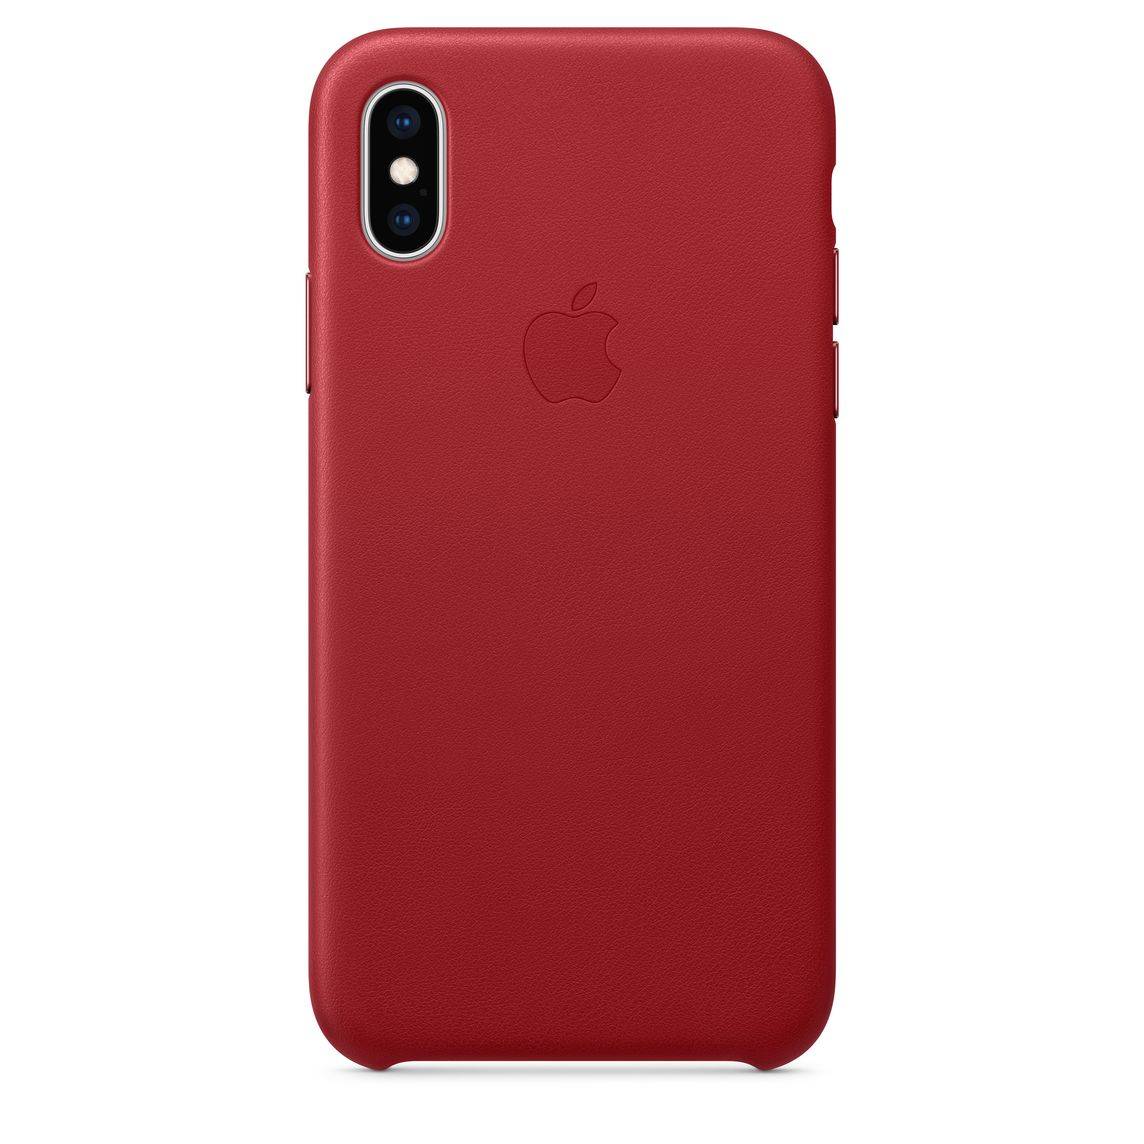 official photos e24eb 42277 iPhone XS Leather Case - (PRODUCT)RED